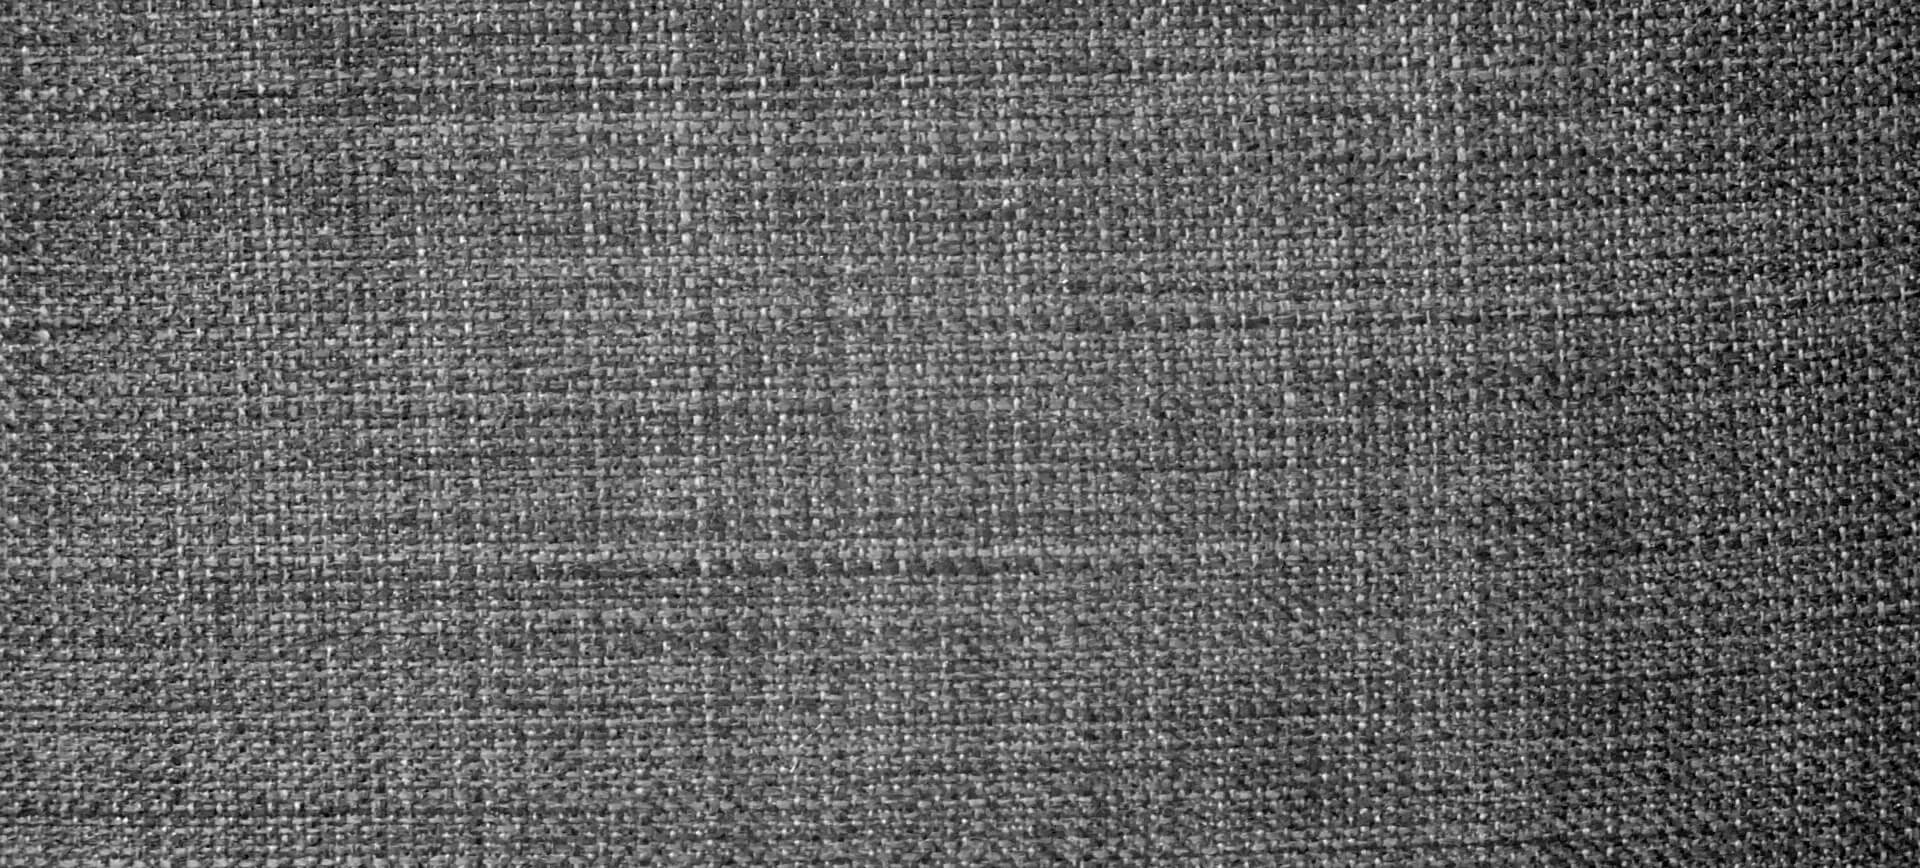 Grey fabric pattern